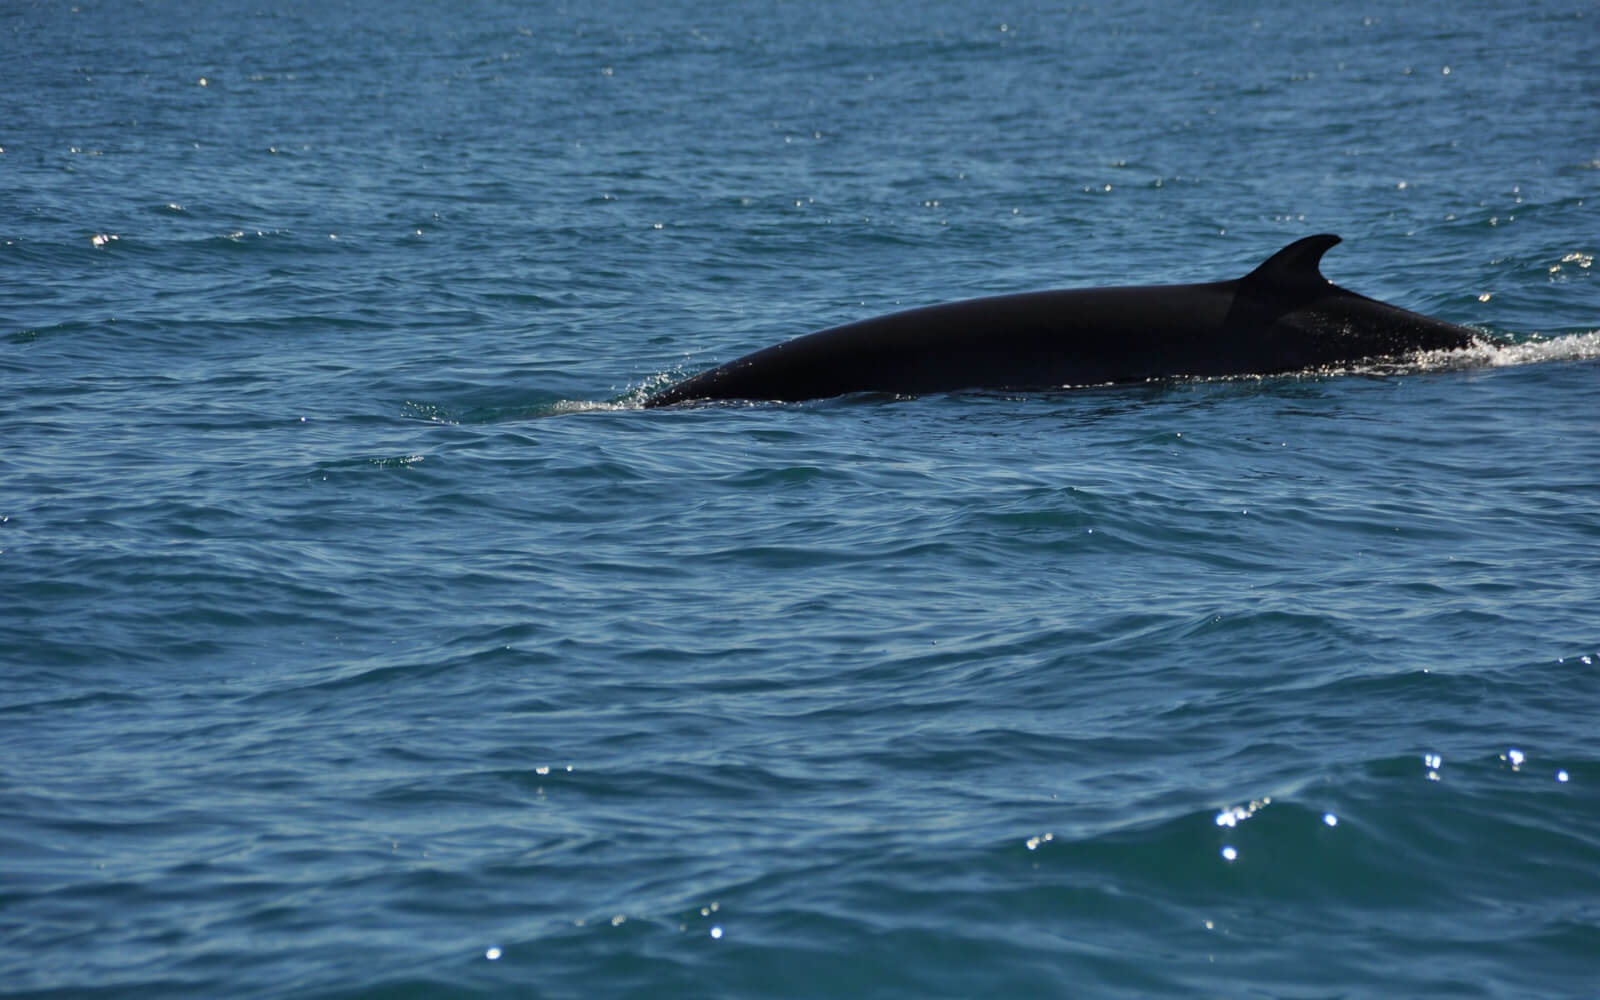 A minke whale comes up for air